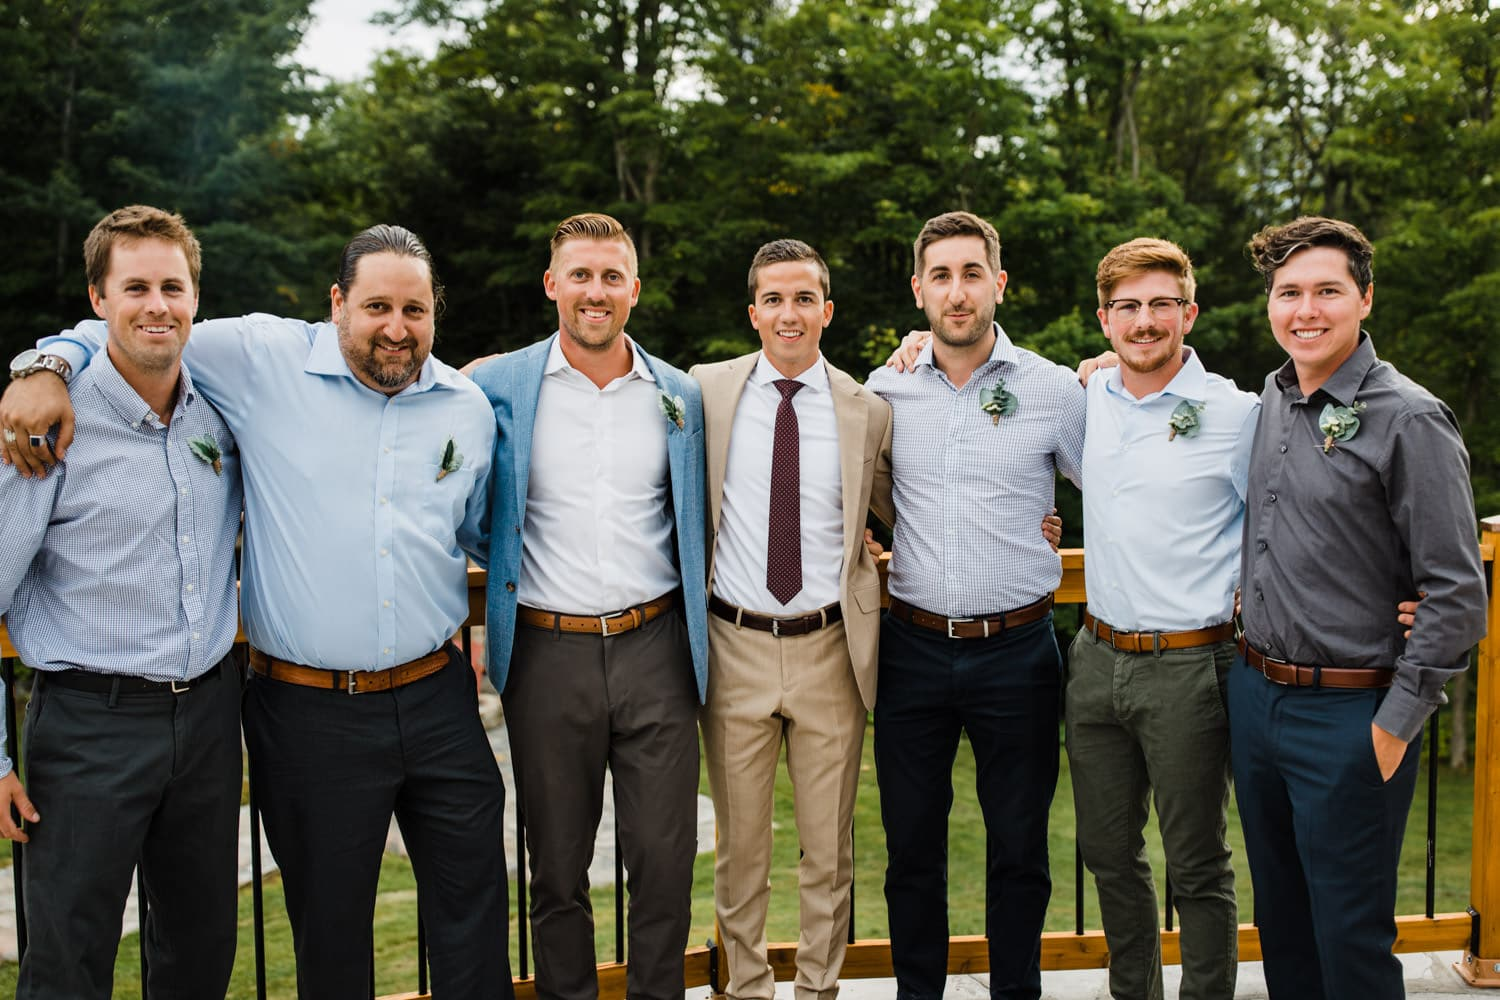 groom stands with his honorary groomsmen after outdoor wedding